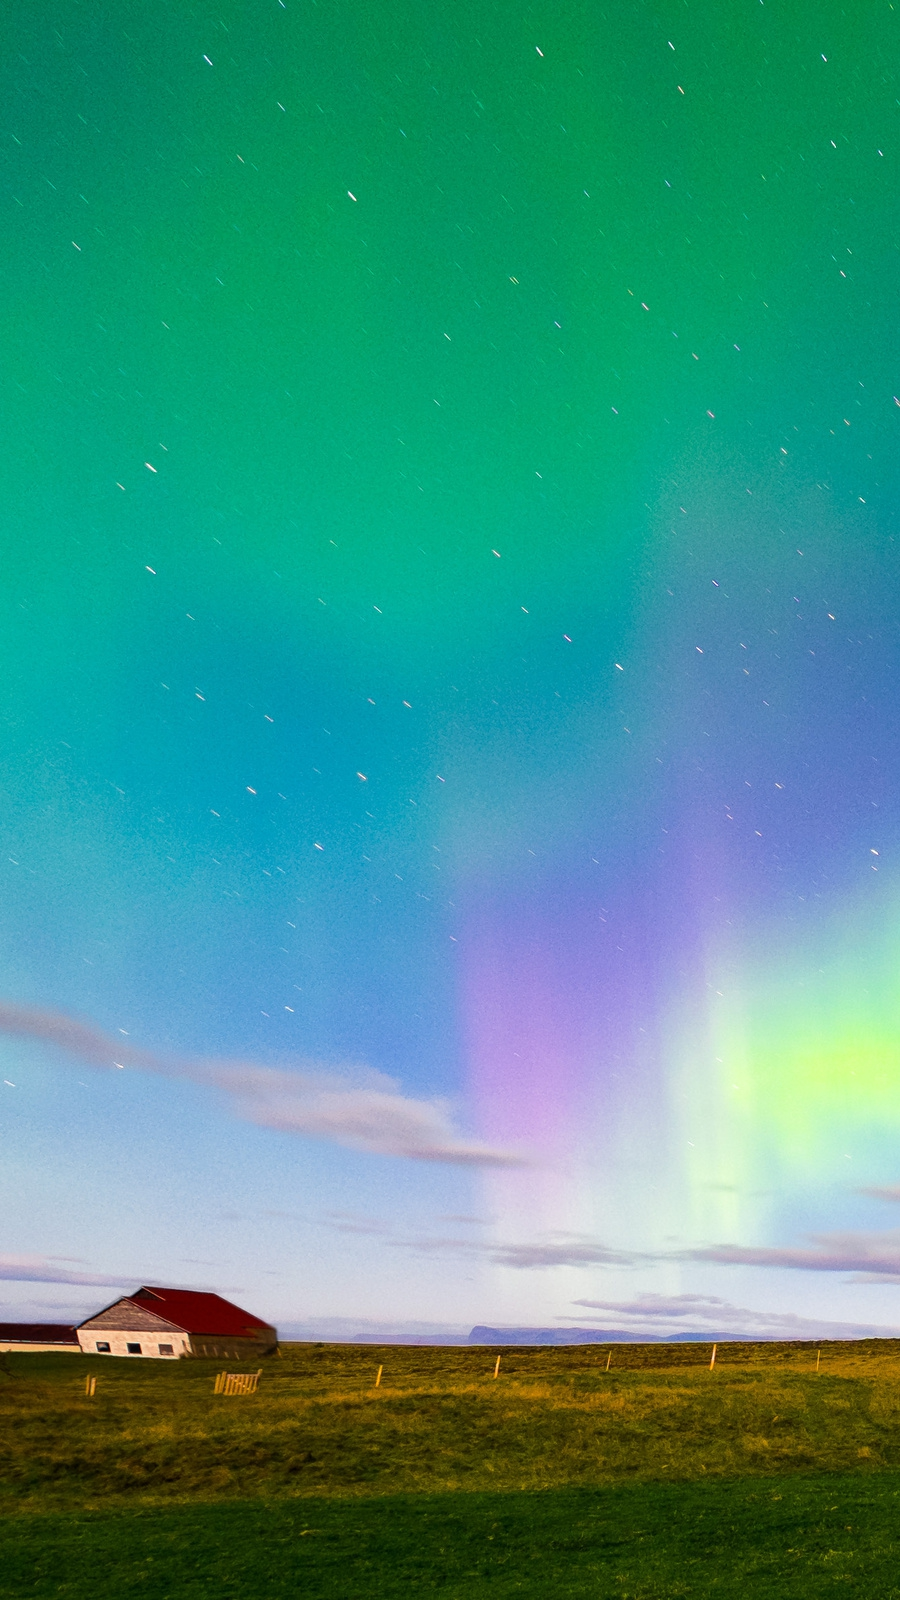 Cute Christmas Wallpaper Quotes Iceland Aurora Borealis Northern Lights Iphone Wallpaper